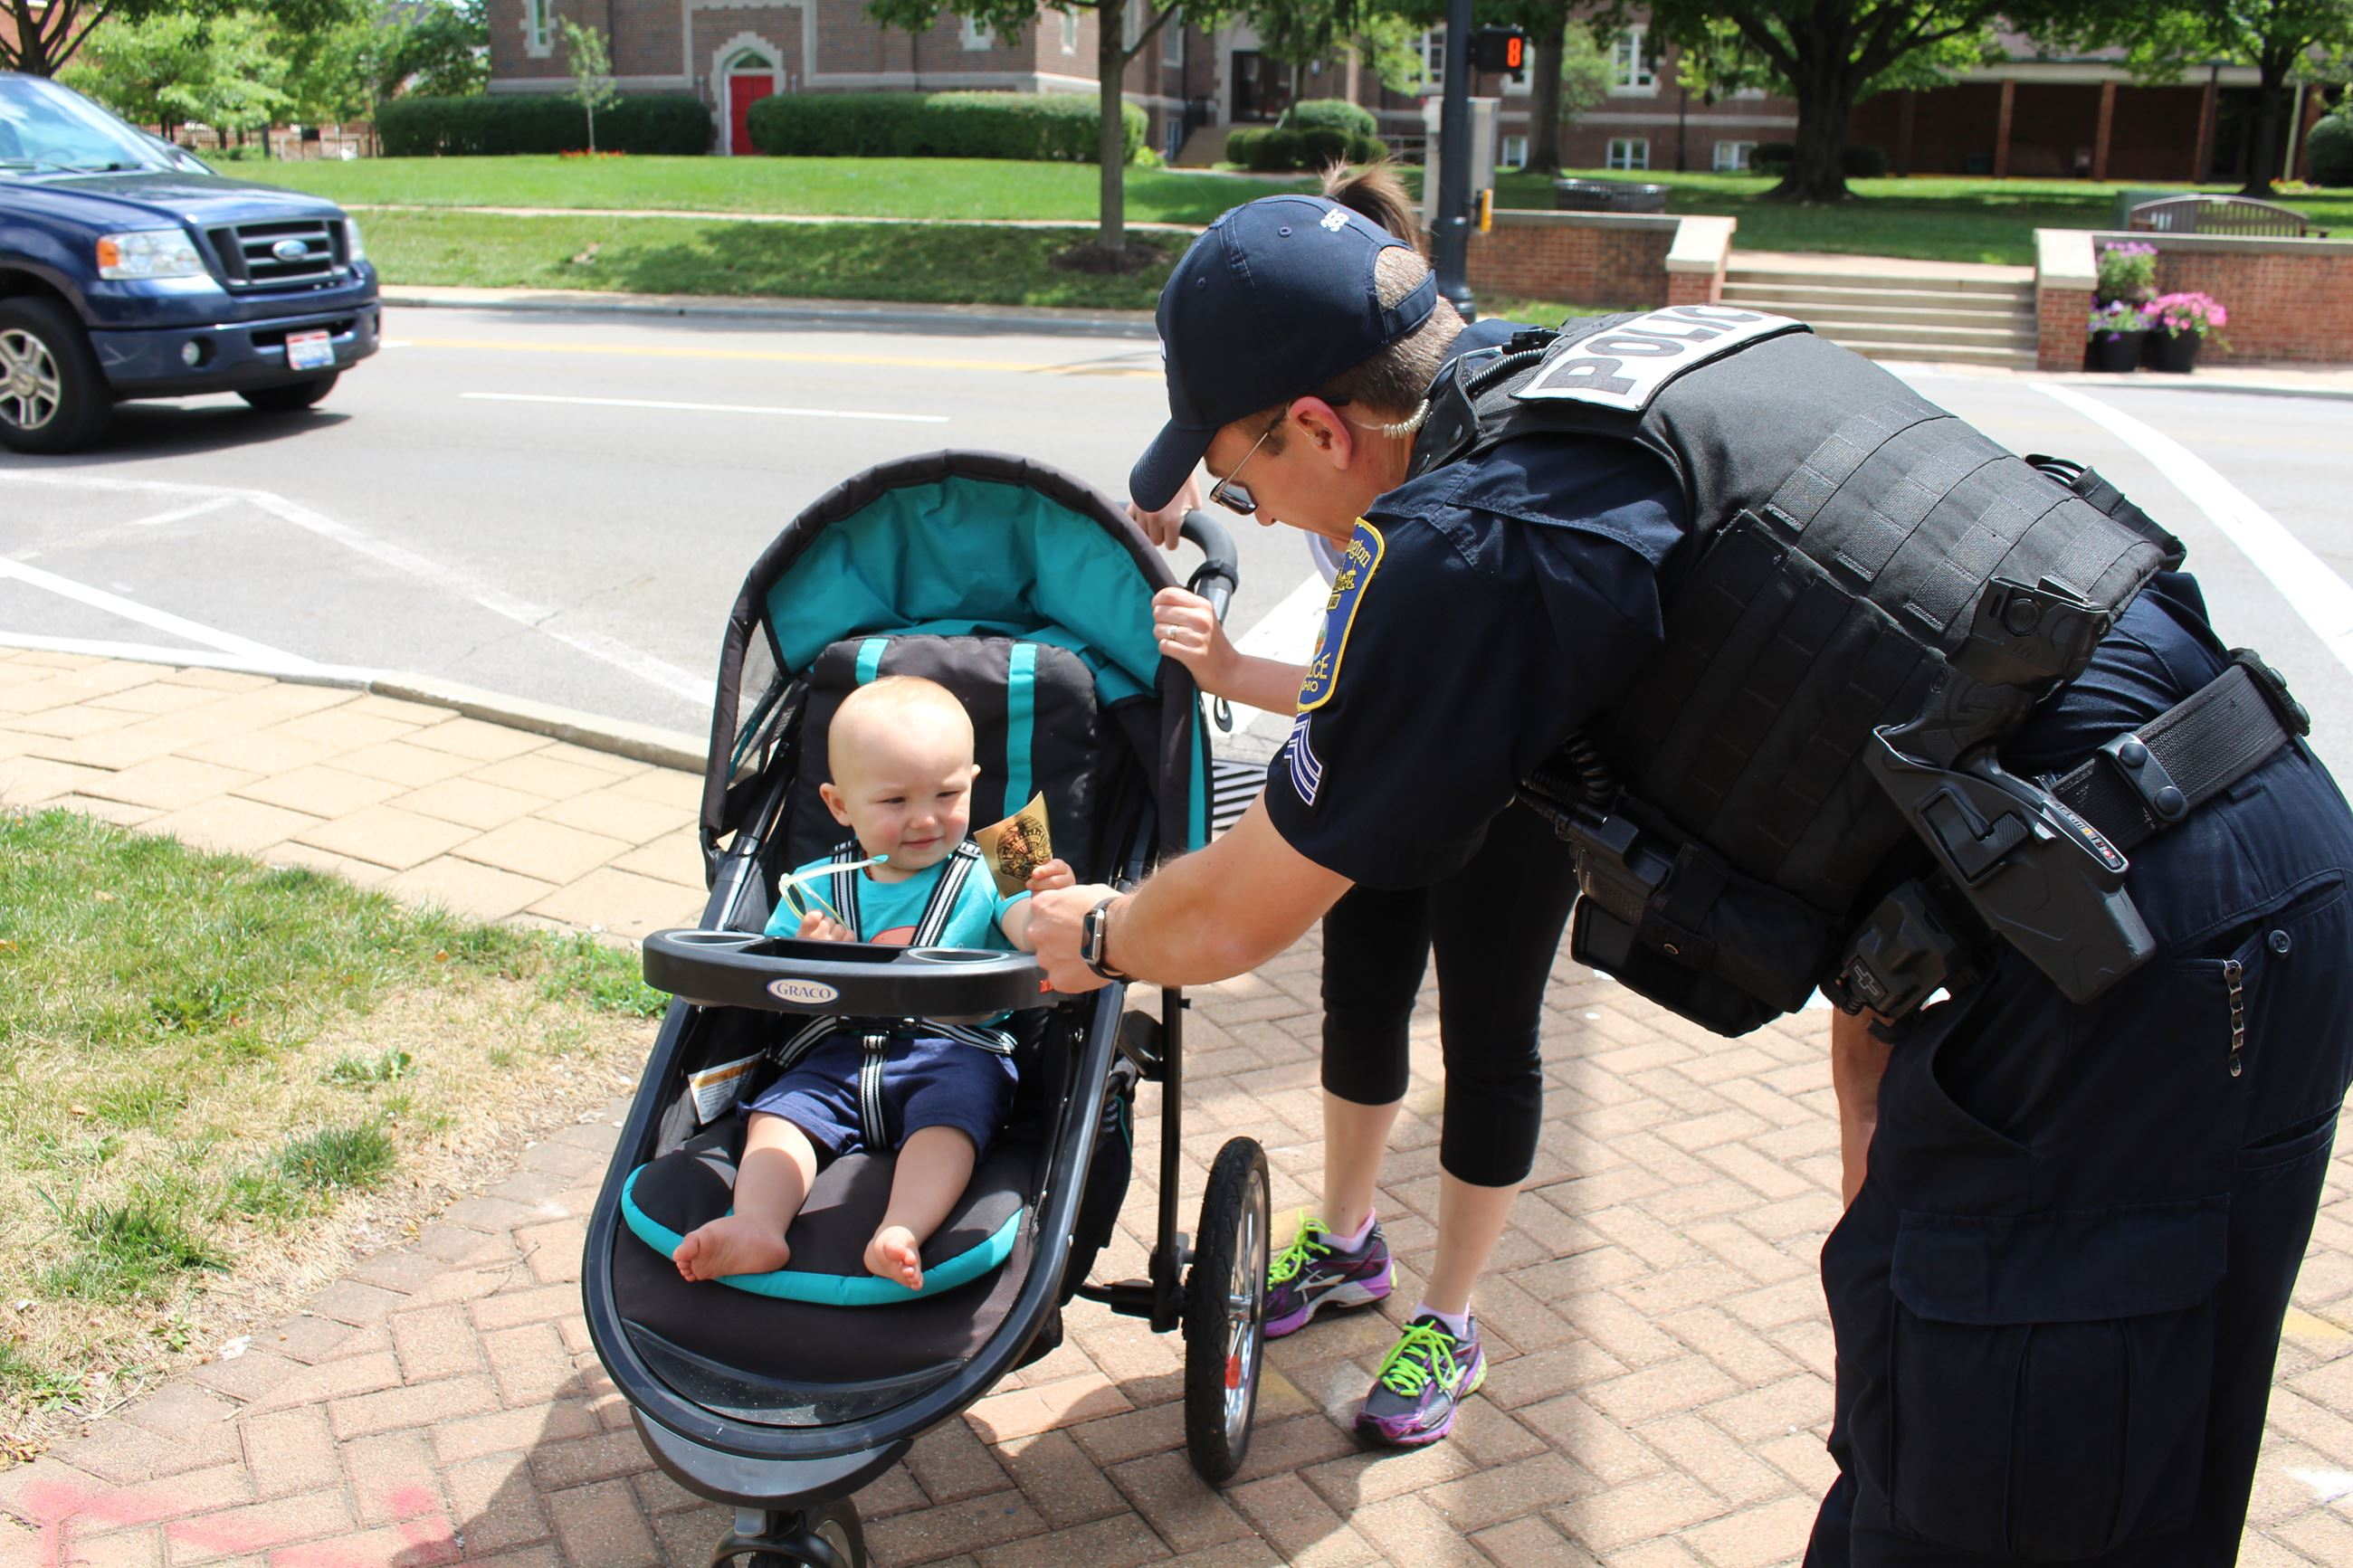 Sgt Mette gives a badge sticker to a baby